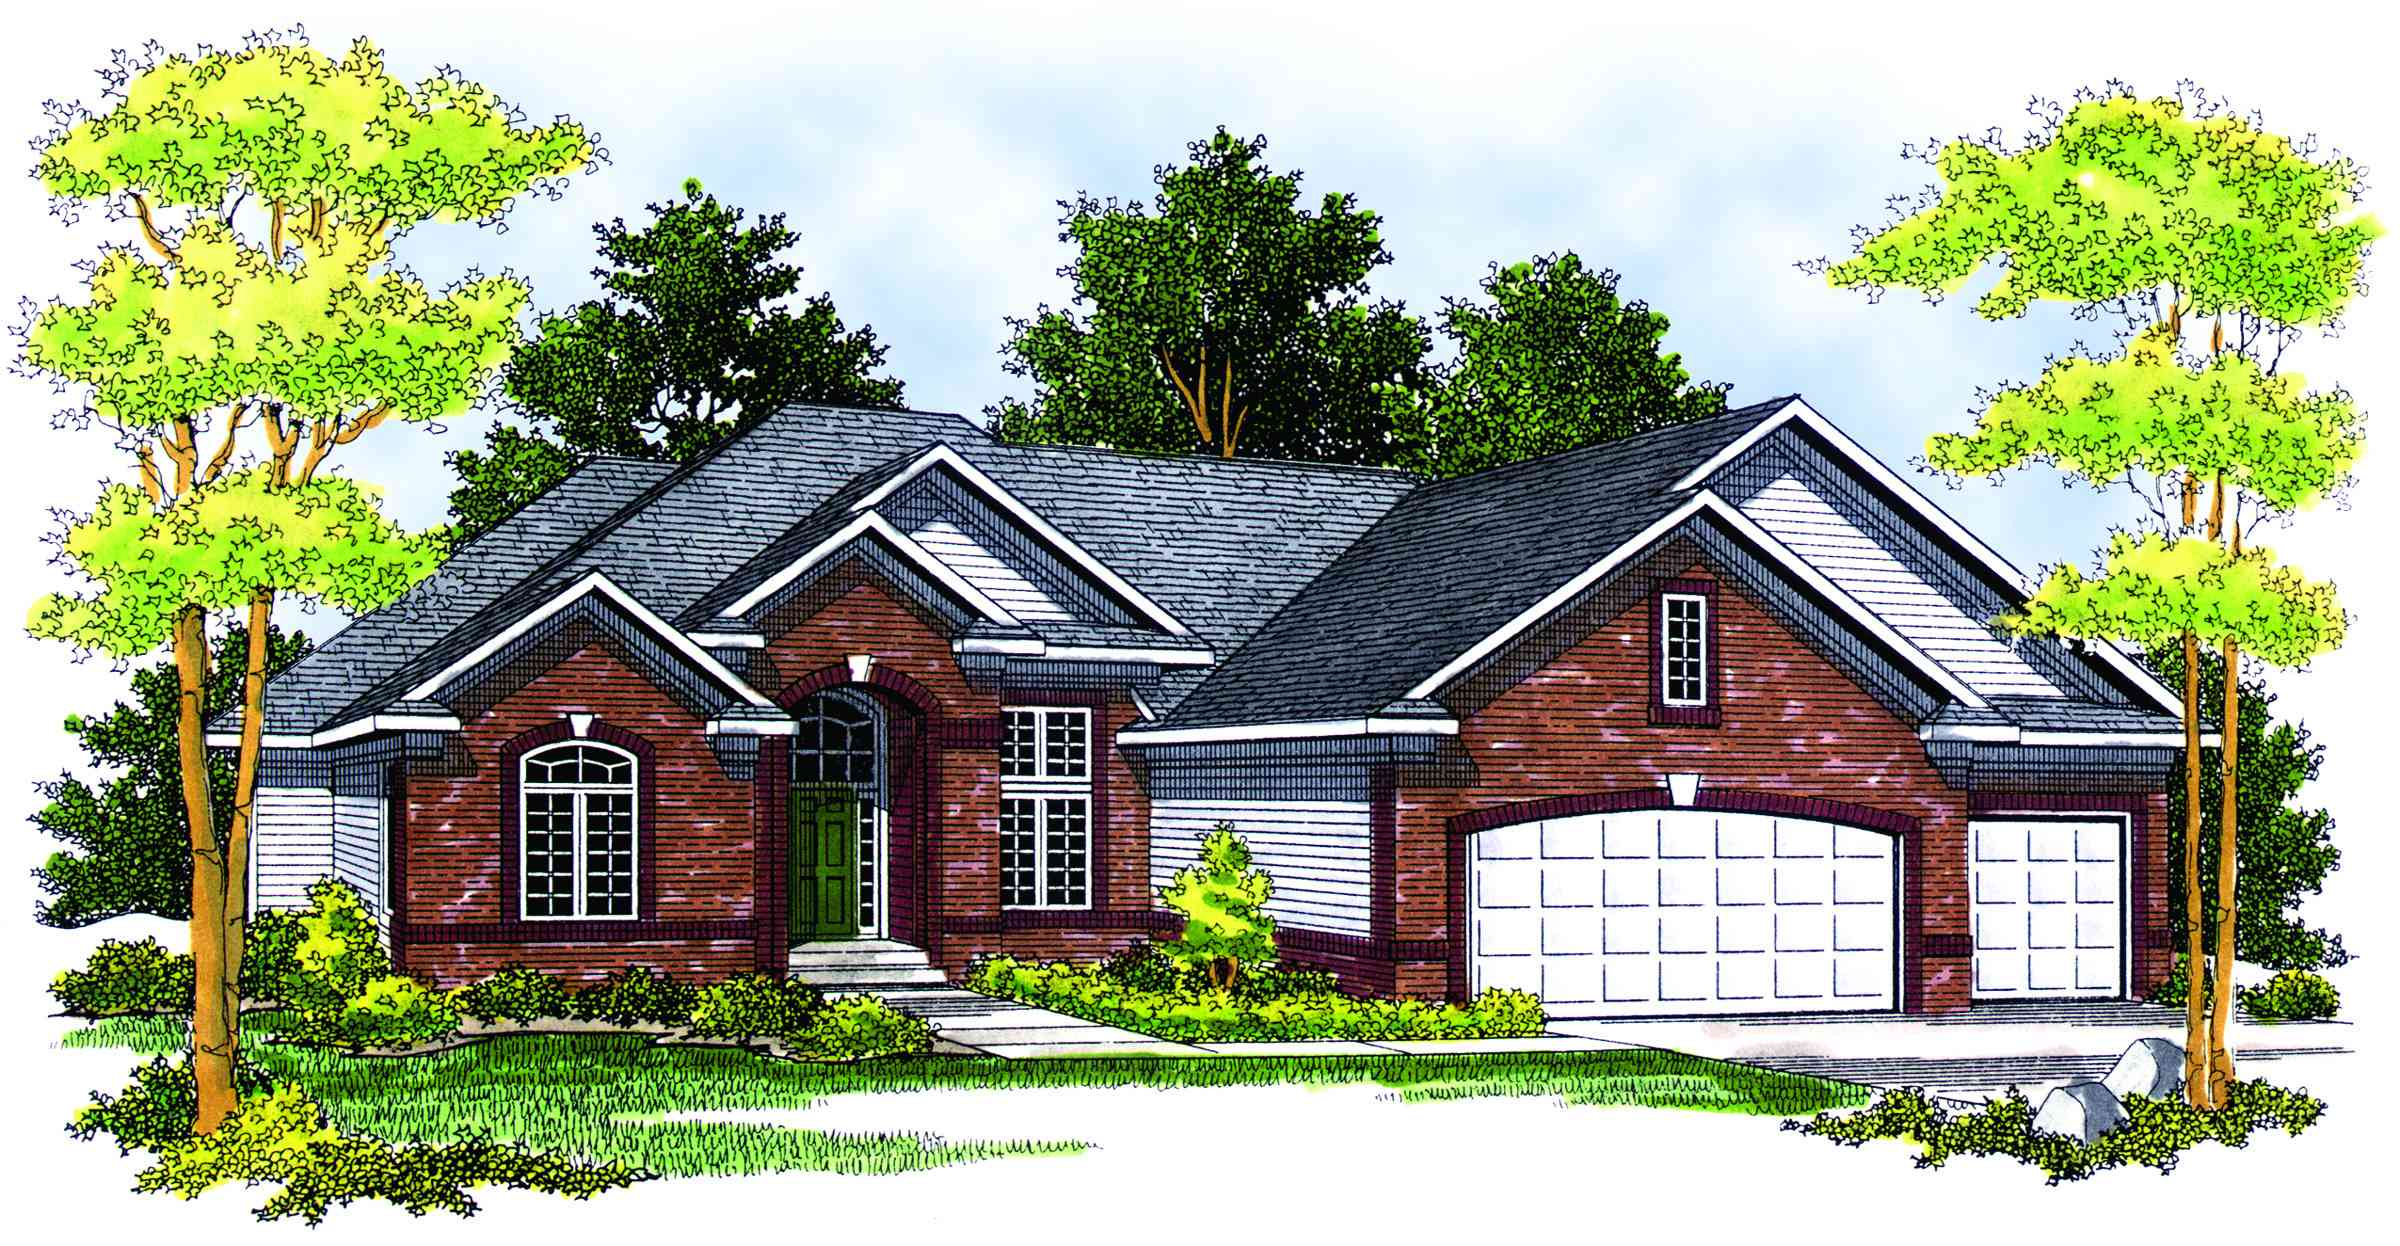 Traditional ranch with finished basement 89208ah for House plans with finished photos